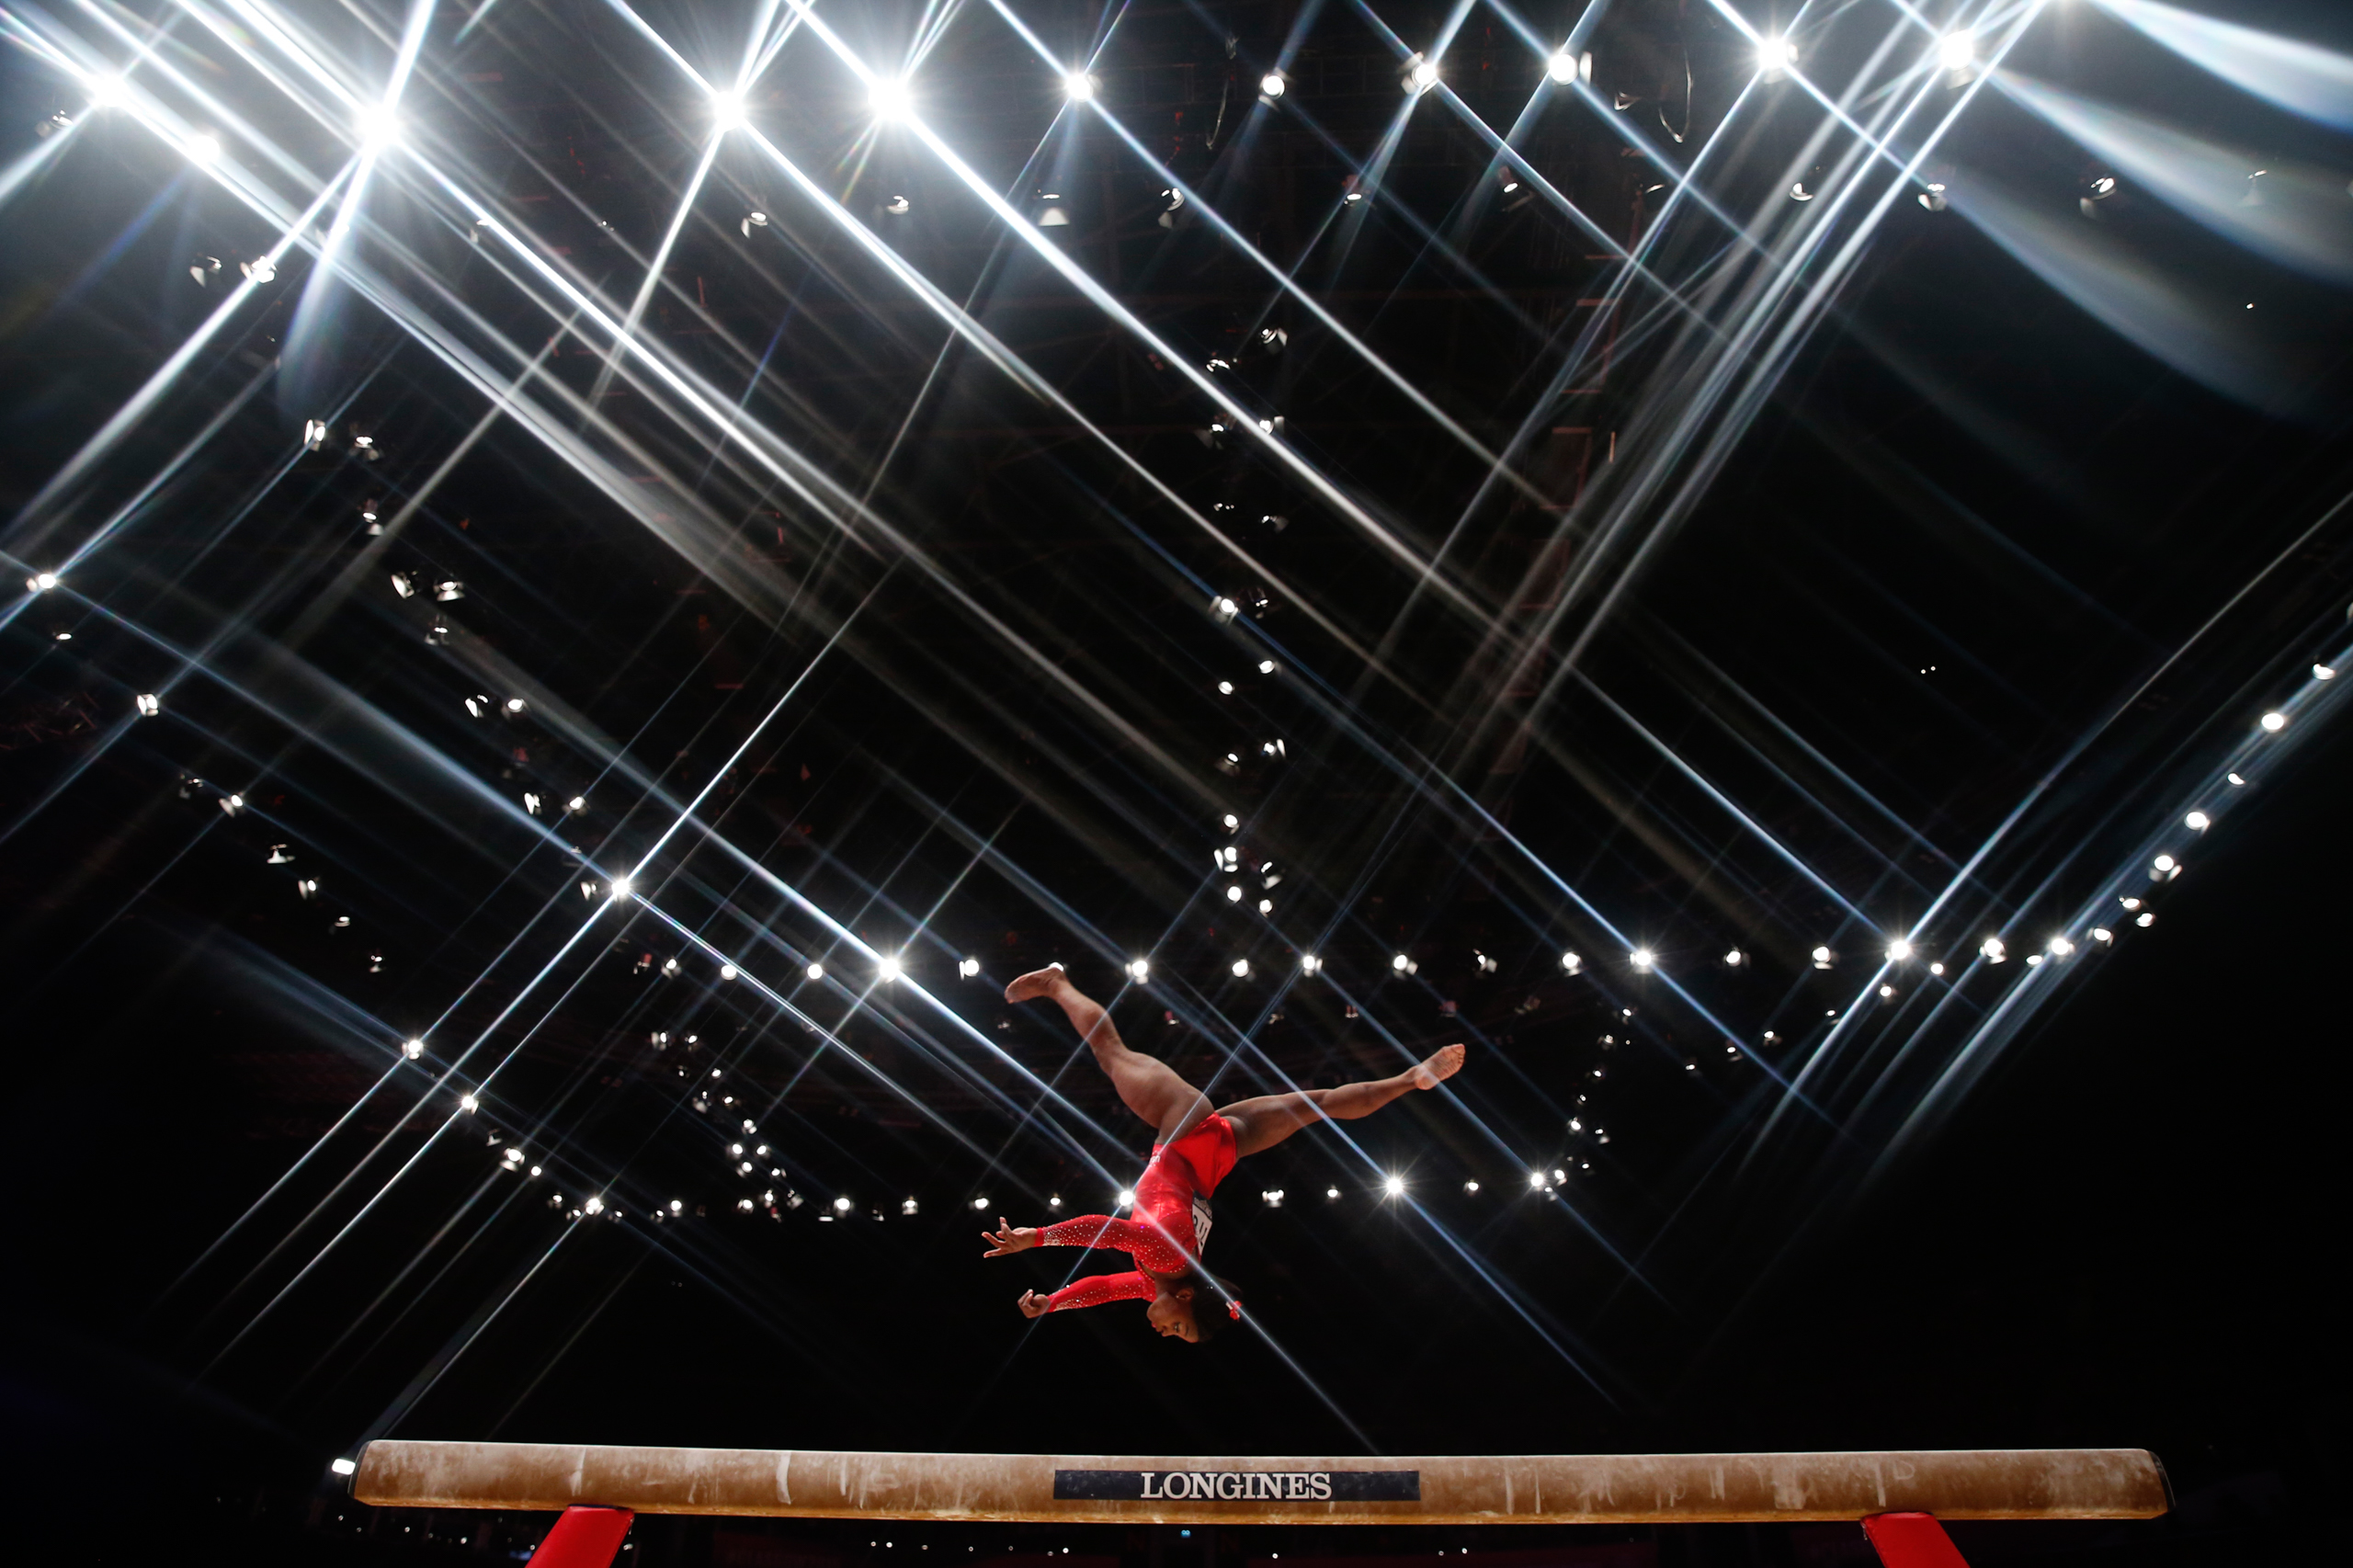 <strong>Simone Biles, Gymnastics, USA</strong>–                                   Expectations are sky-high for the U.S. women's gymnastics team in Rio, and a key reason is the 4 ft. 8 in. 19-year-old from Texas. Although Biles will be competing in her first Olympics, she's the hands-down gold medal favorite in the all-around. Among the reasons: she can execute moves too challenging for even her elite rivals, combining rare power, skill and a preternatural comfort in the air. Expect the three-time world all-around champion to add more than a few Olympic medals to her impressive collection.